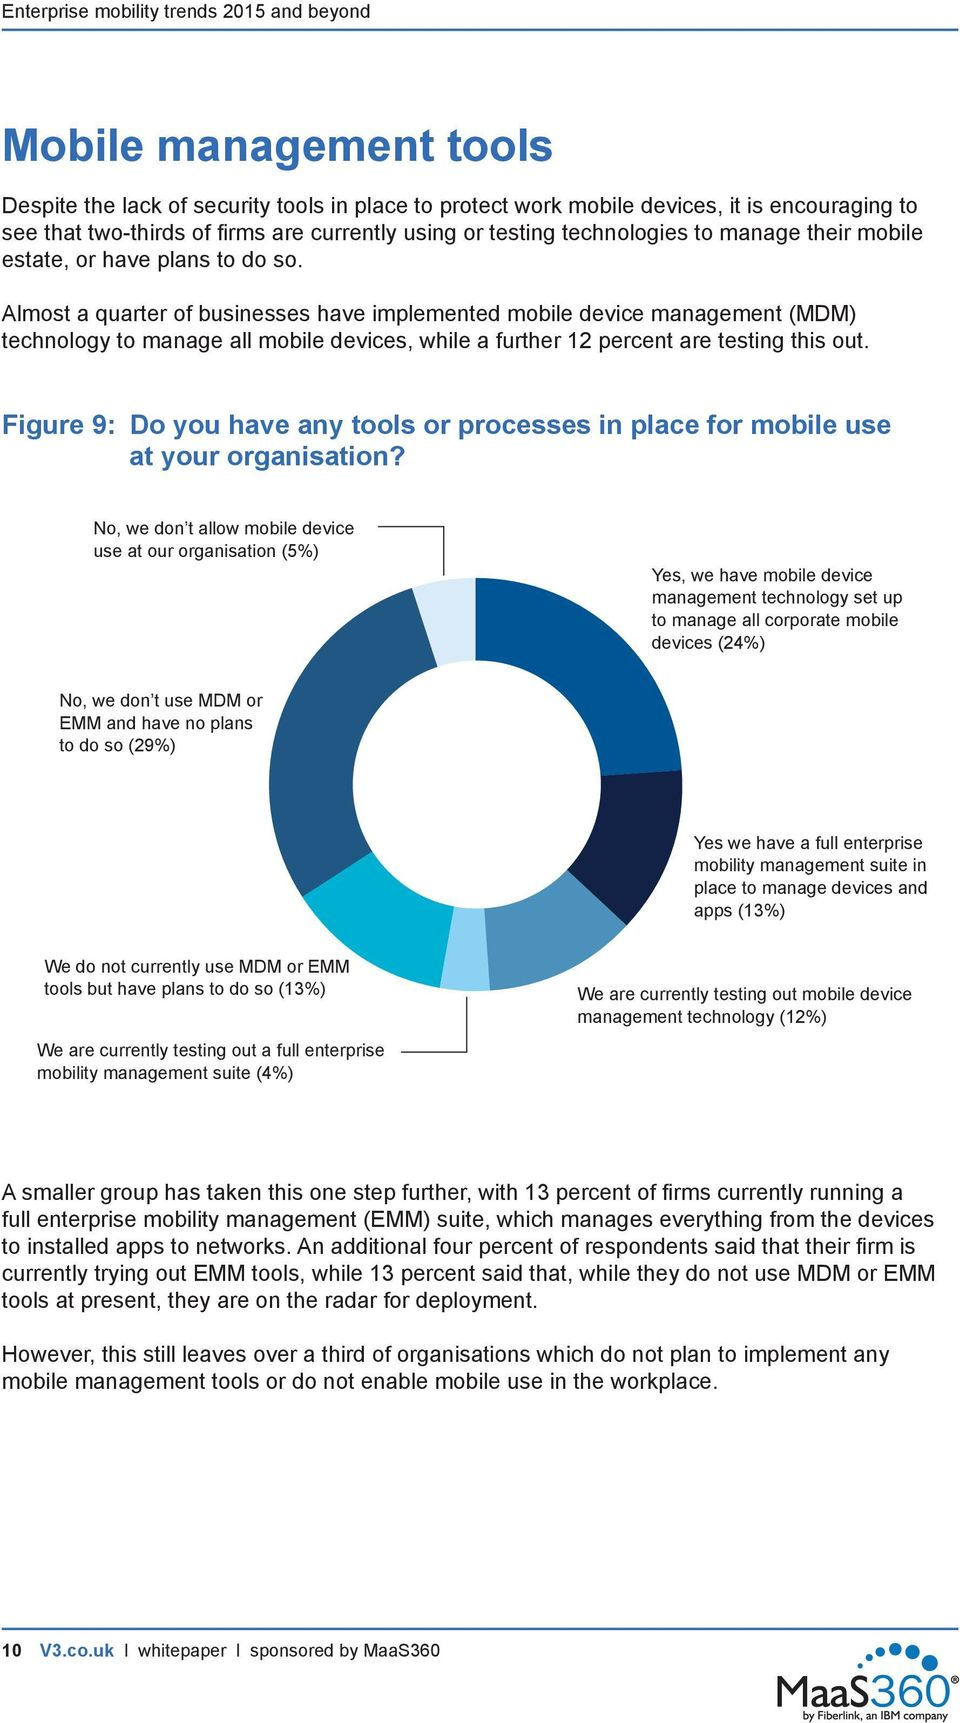 Almost a quarter of businesses have implemented mobile device management (MDM) technology to manage all mobile devices, while a further 12 percent are testing this out.